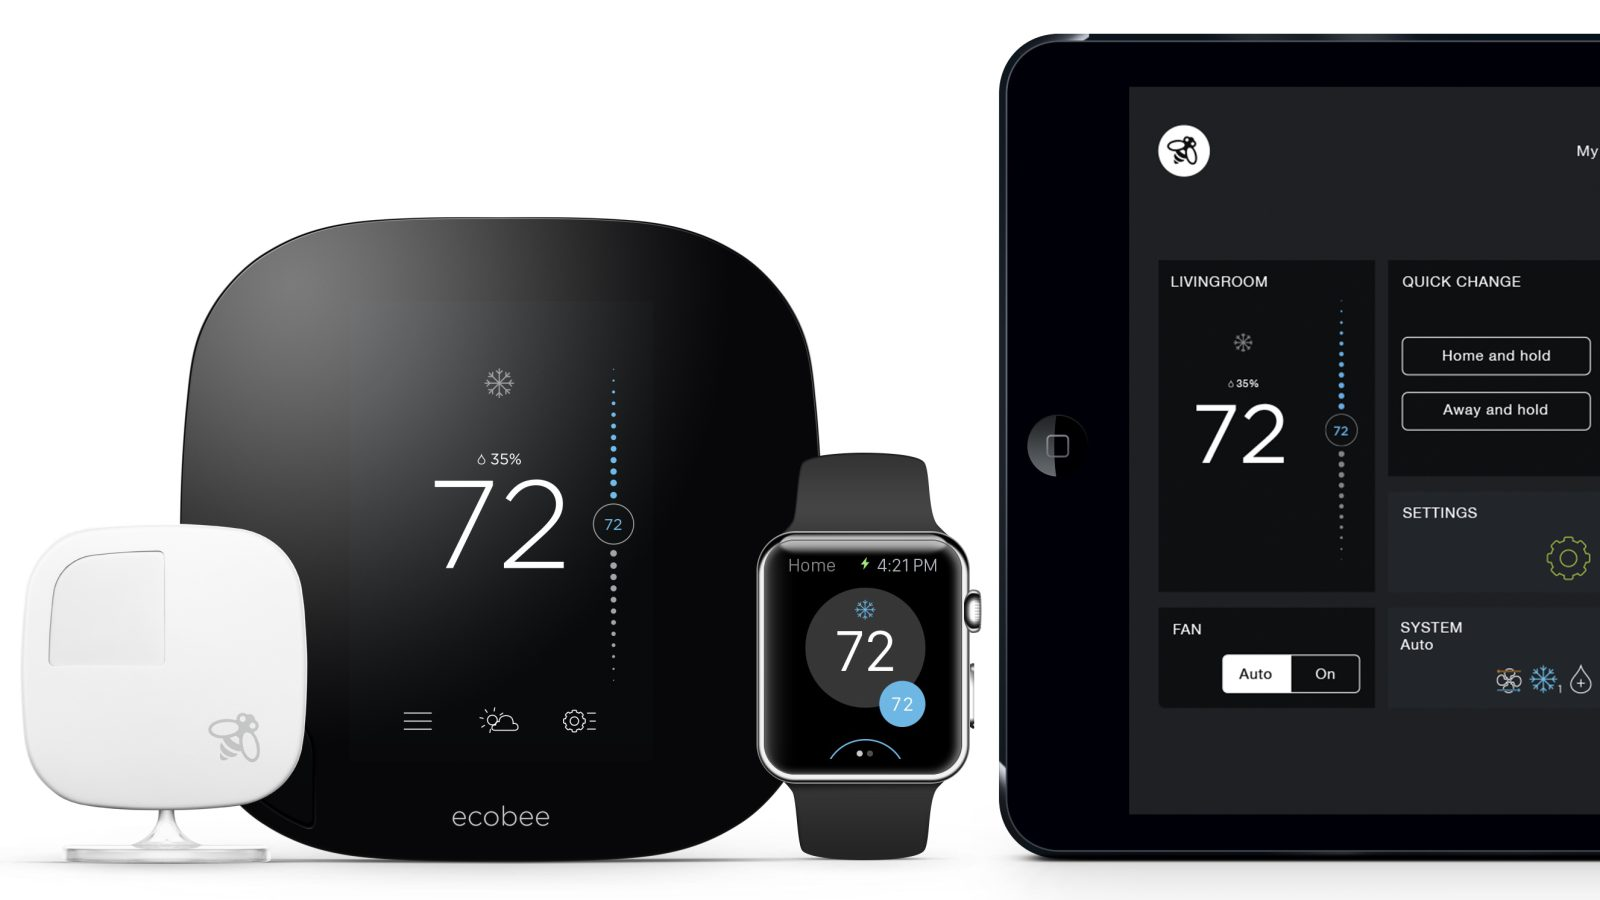 Ecobee smart thermostats w/ HomeKit from $120, LED light bulbs, and more in today's Green Deals